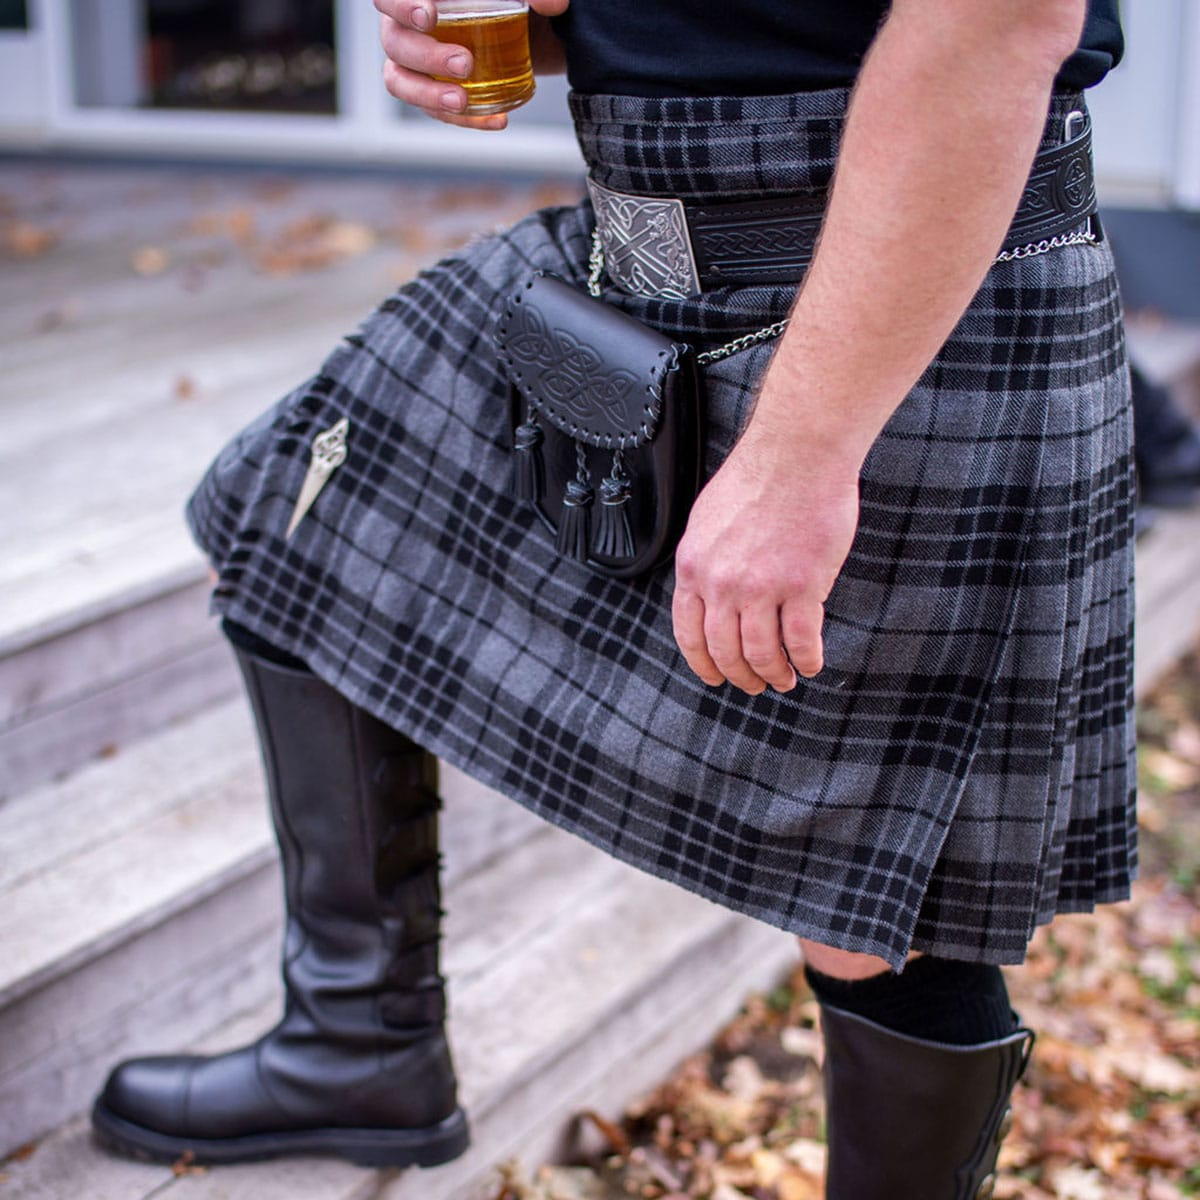 A man wearing a kilt, sporran, and boots  while holding a beer.